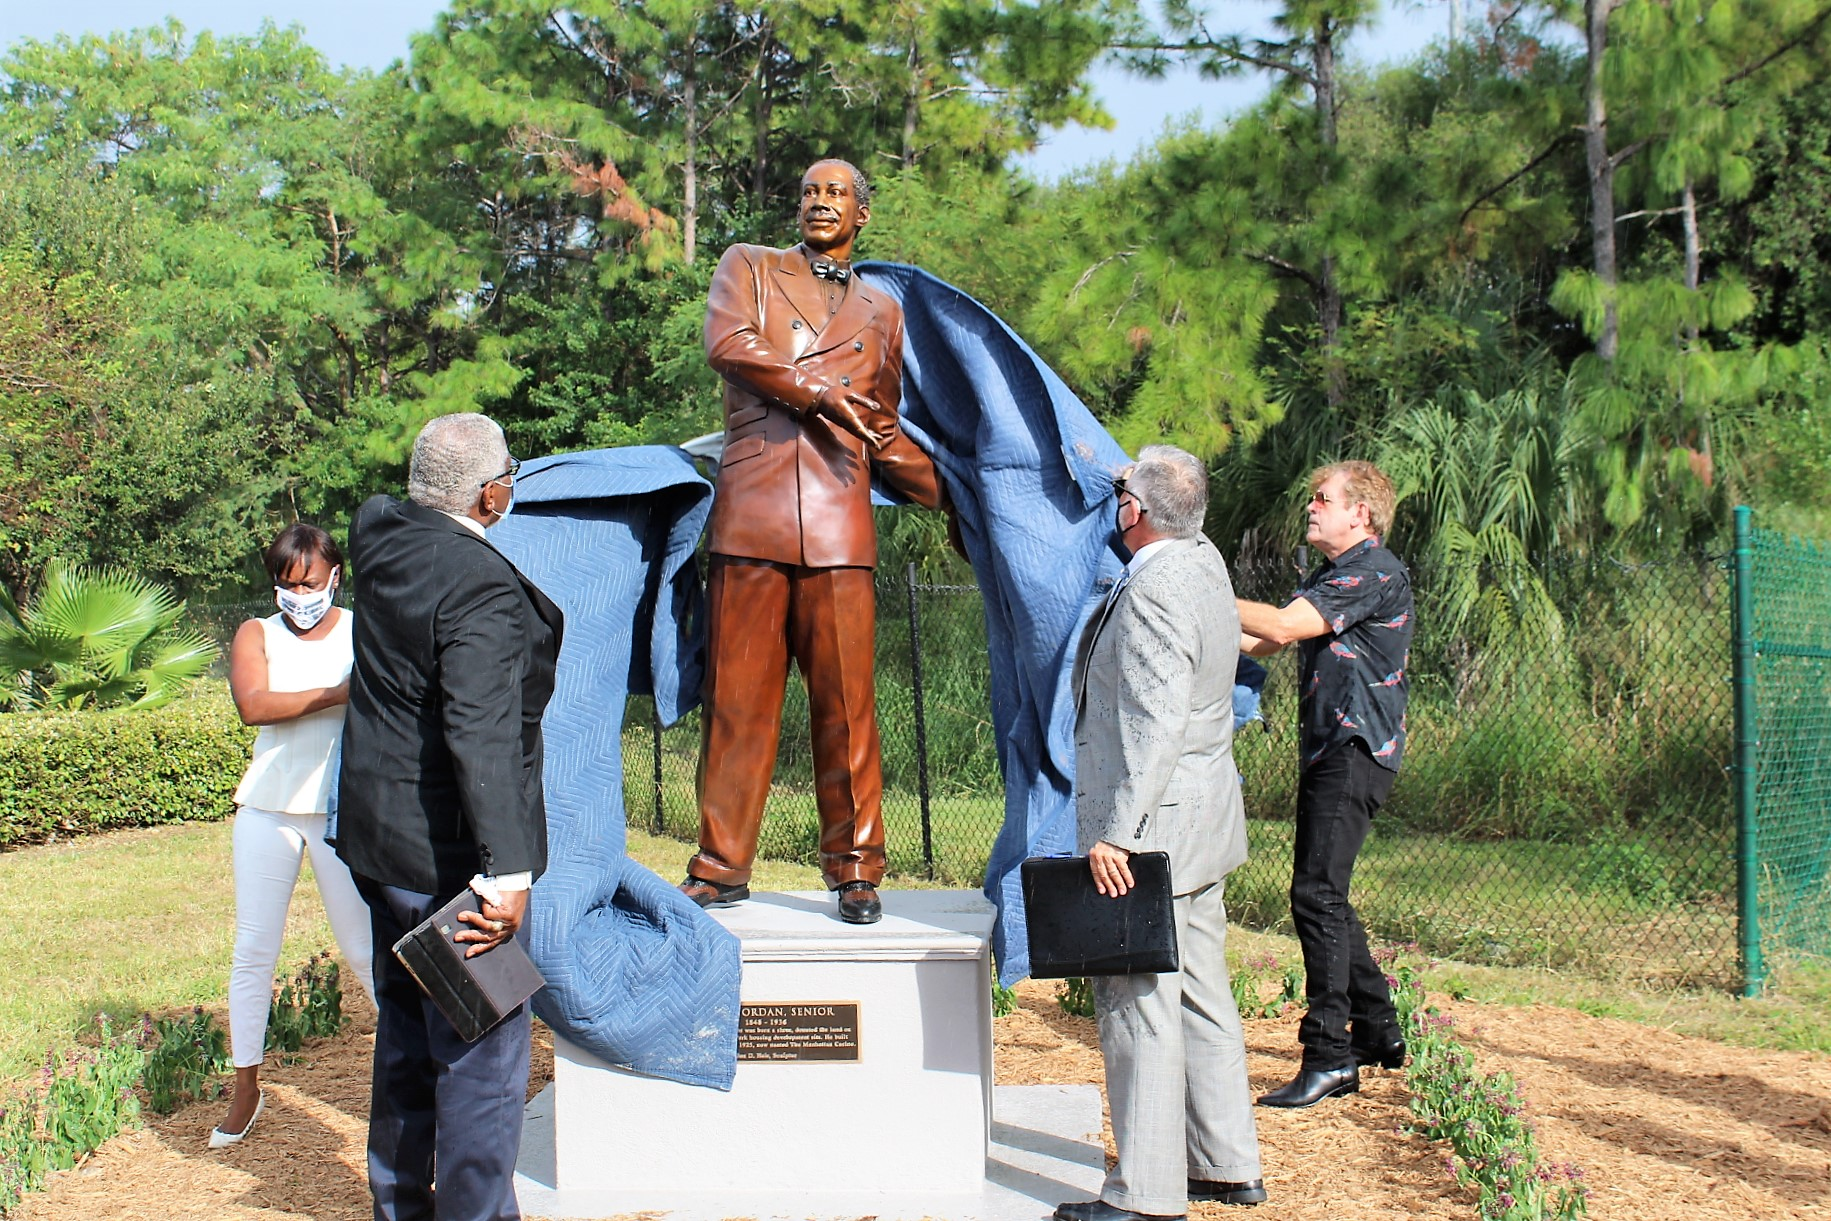 A group of four people unveil a bronze statue of a man outside